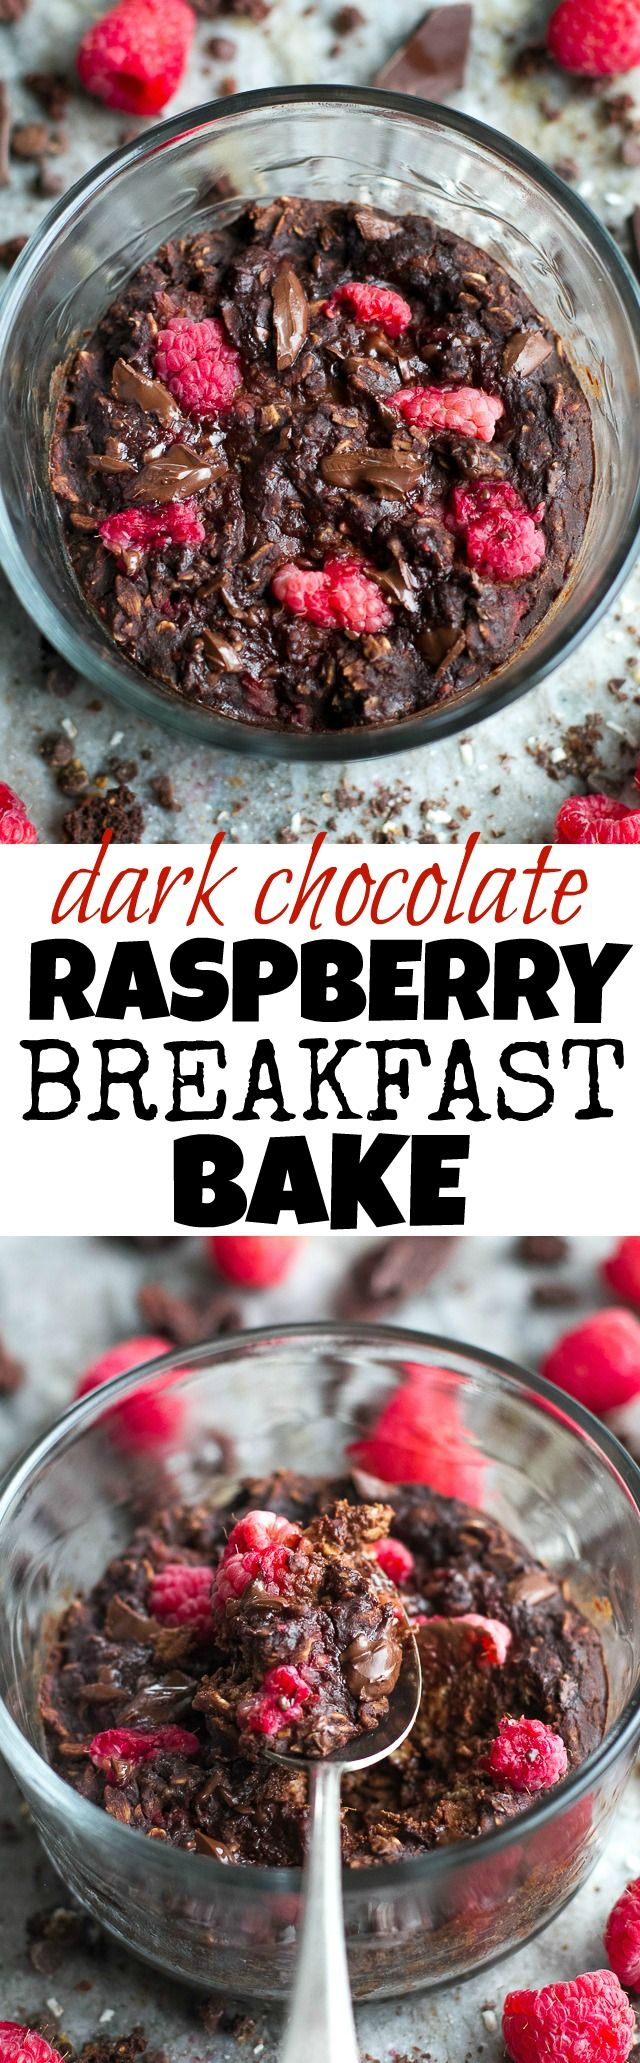 Dark Chocolate Raspberry Breakfast Bake - sweetly tart raspberries paired with rich dark chocolate in a single-serve vegan breakfast bake that's guaranteed to keep you satisfied all morning! | | healthy recipe ideas @xhealthyrecipex |